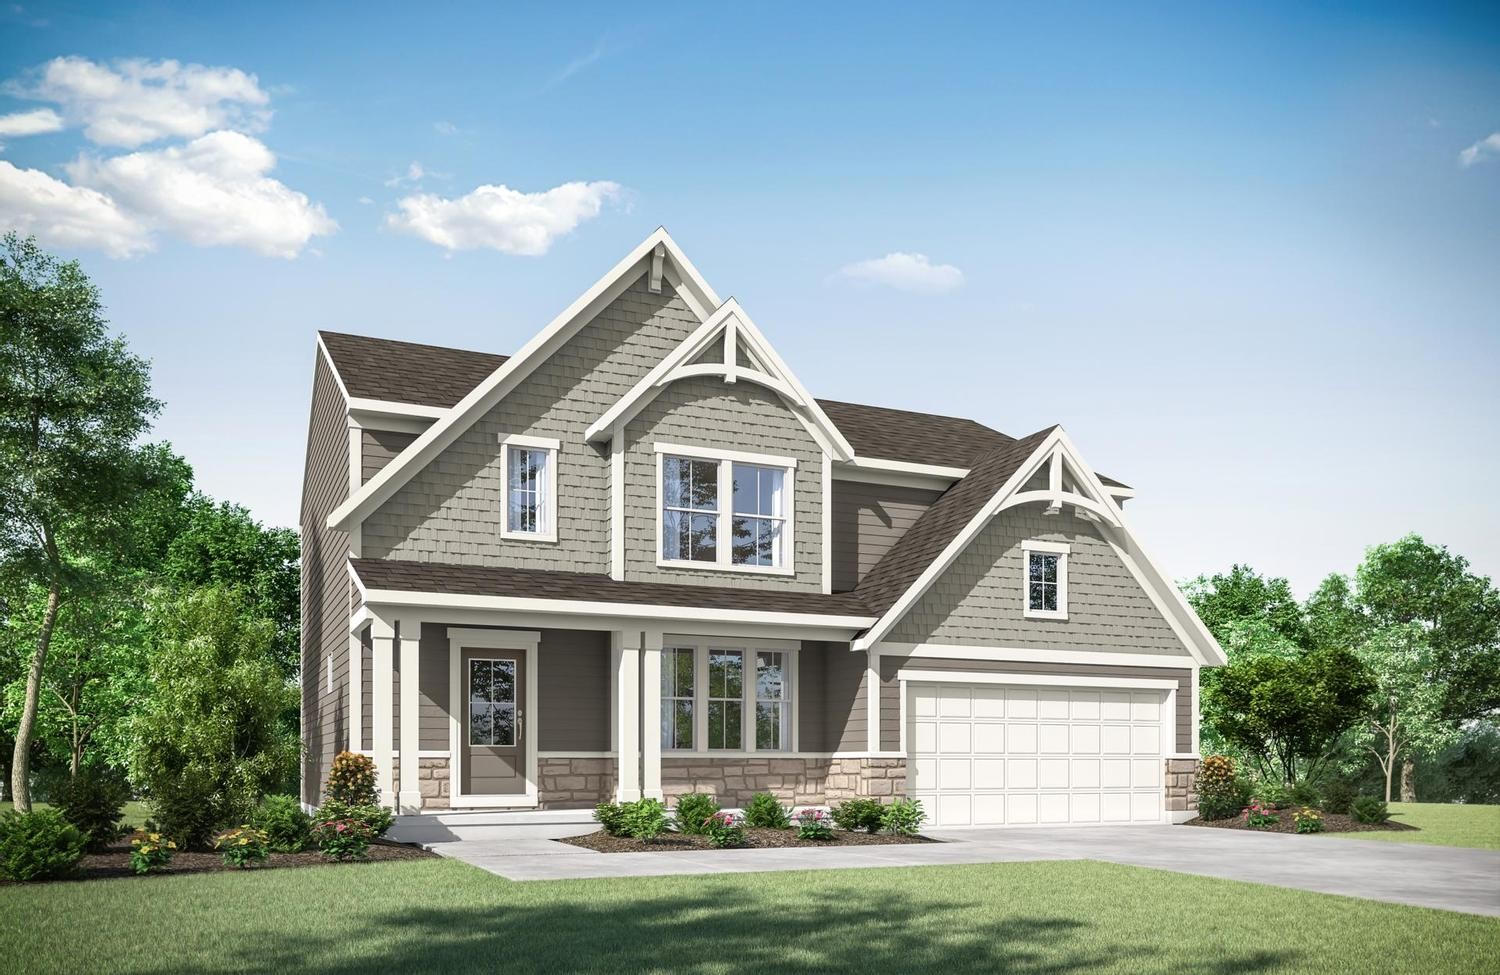 Move In Ready New Home In Billingsley - The Reserve Community